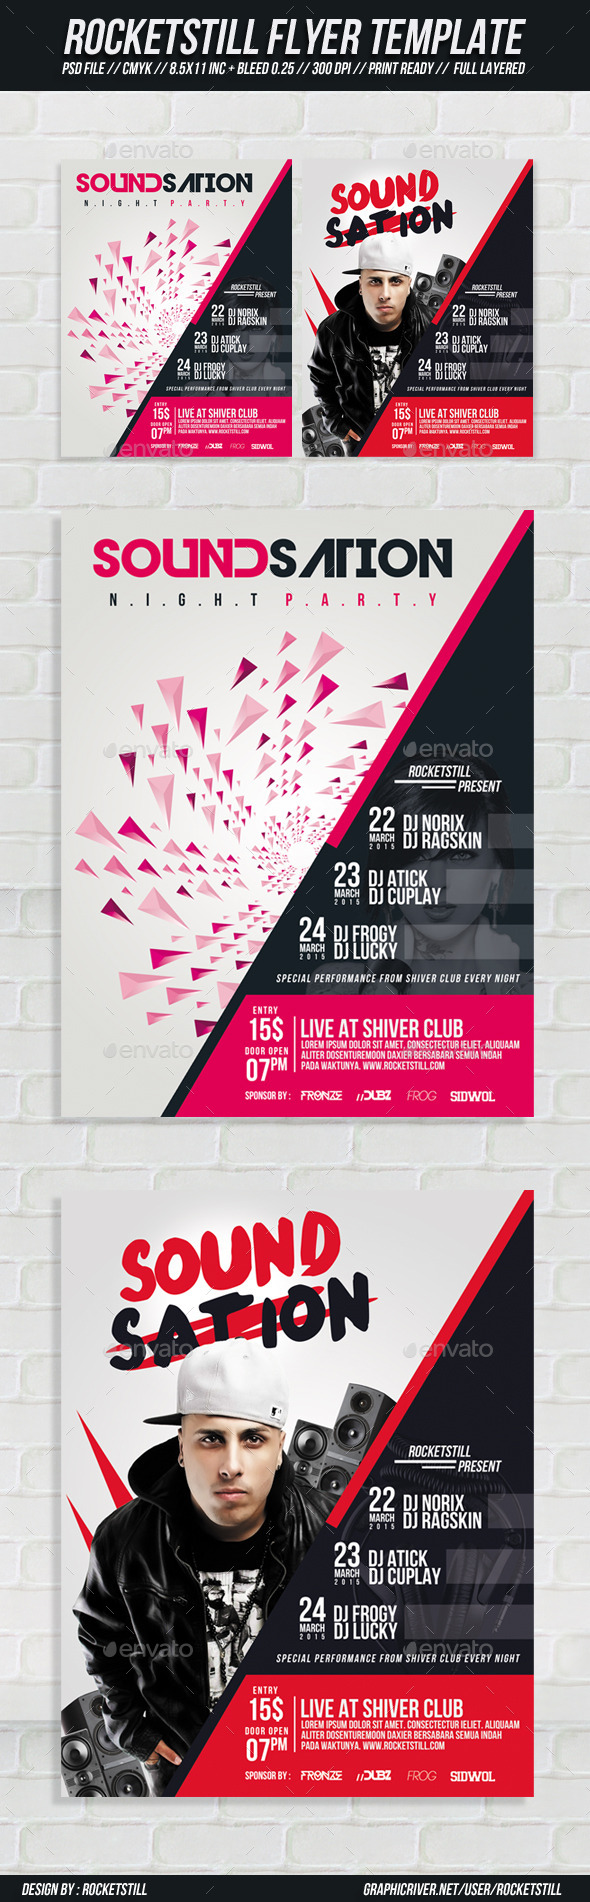 Sound Sation - Flyer - Clubs & Parties Events